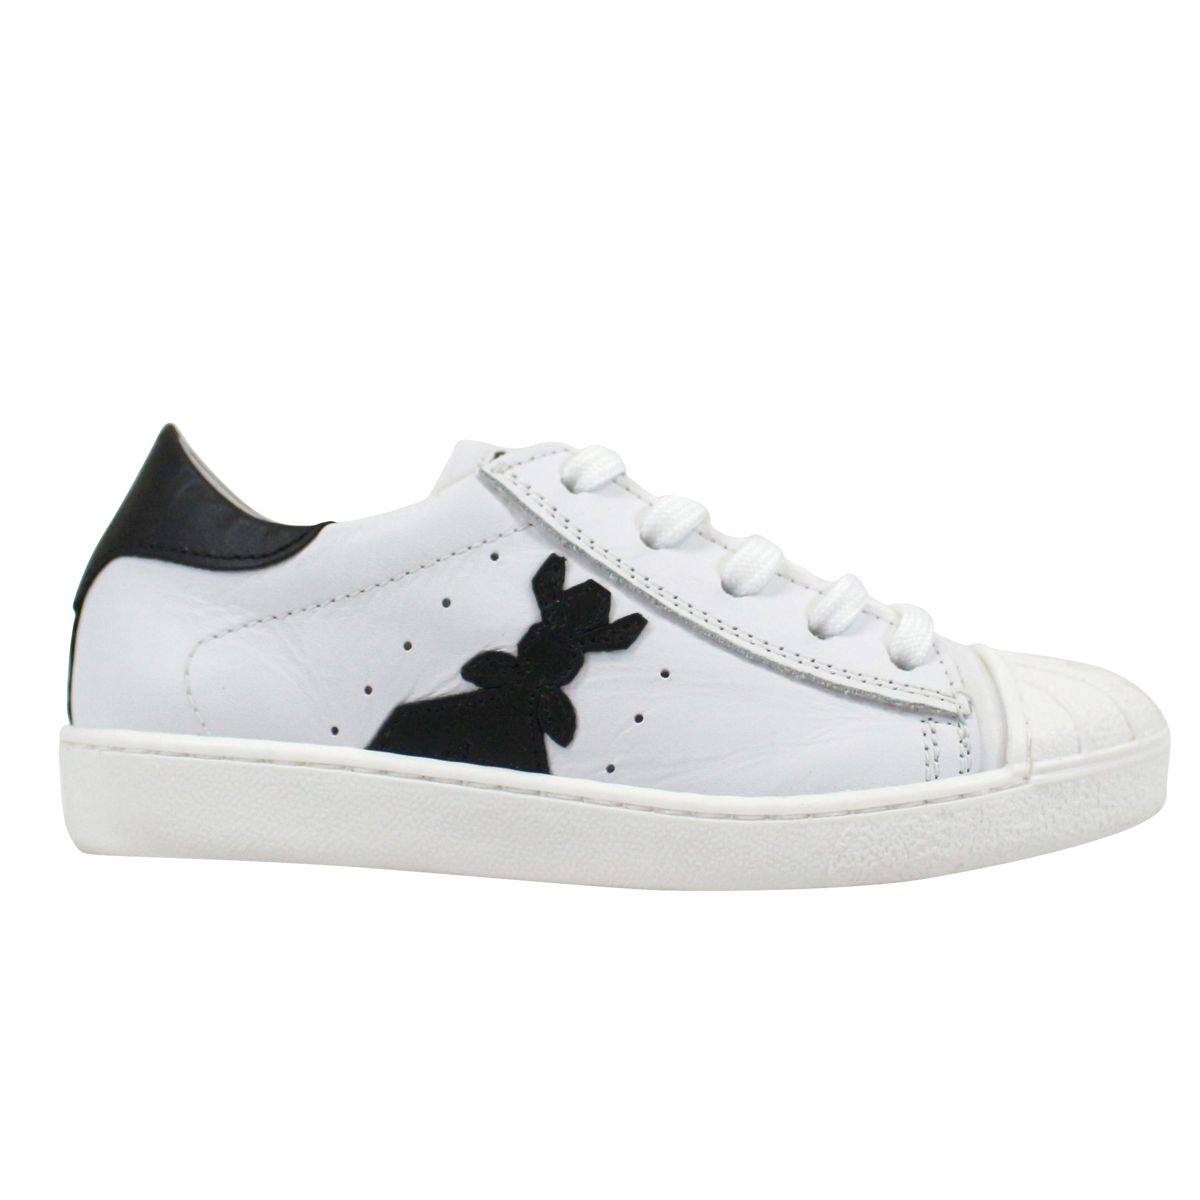 Low sneakers White black Patrizia Pepe